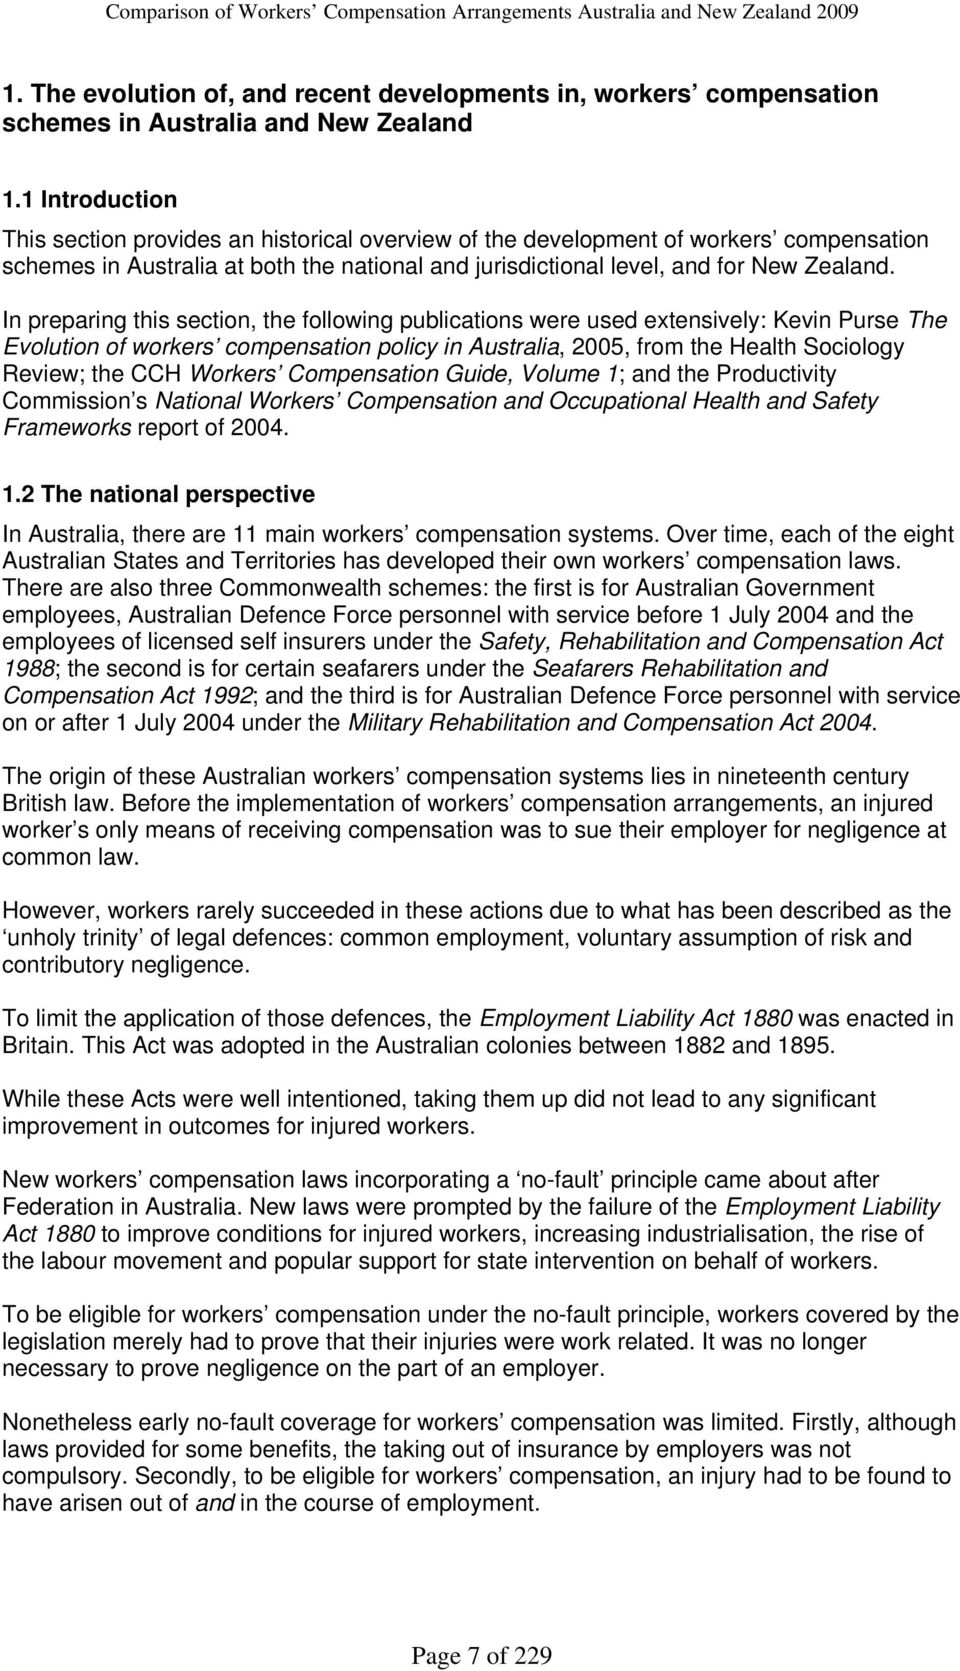 In preparing this section, the following publications were used extensivel: Kevin Purse The Evolution of workers compensation polic in Australia, 2005, from the Health Sociolog Review; the CCH